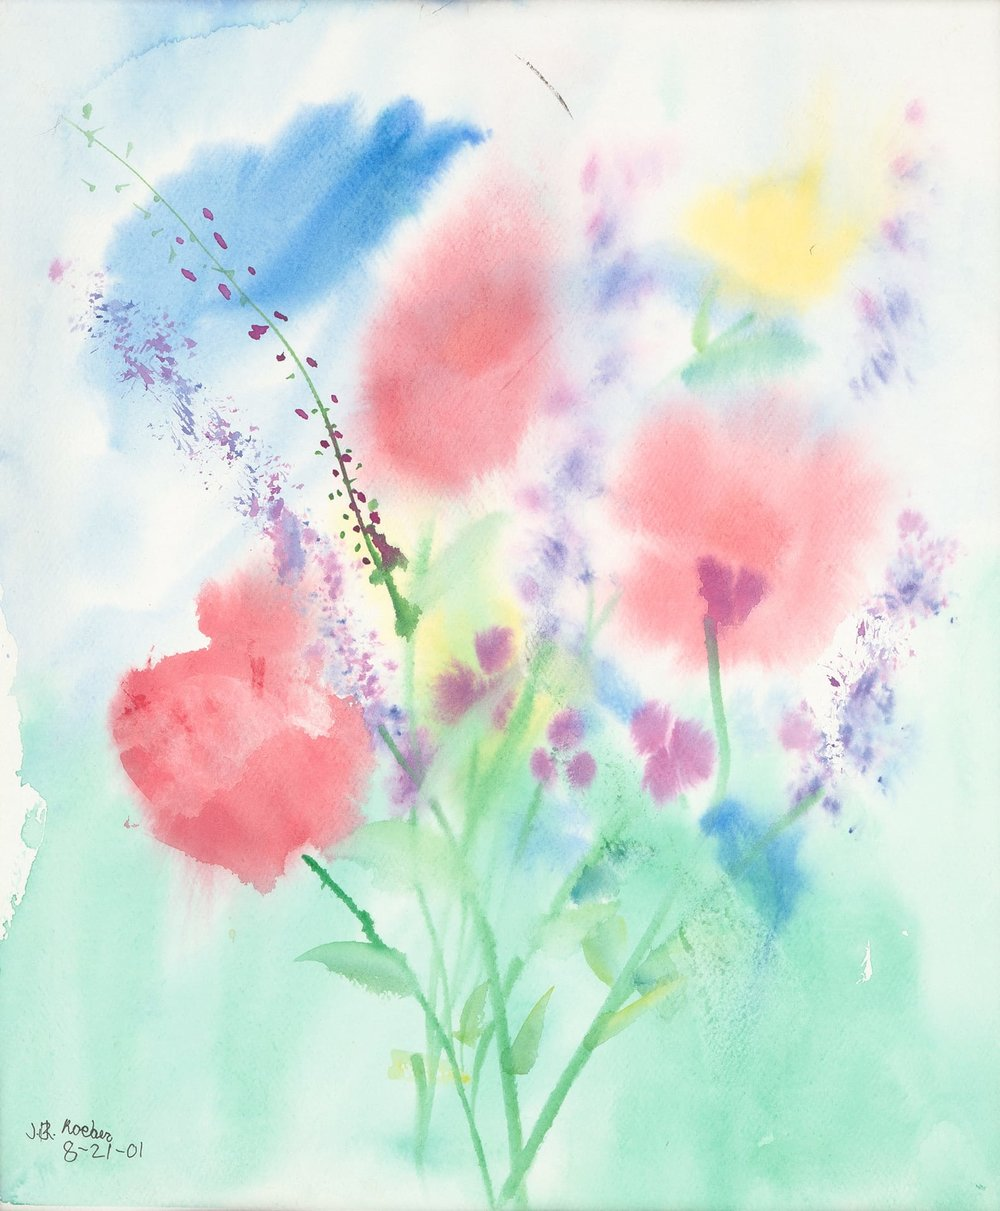 Watercolor Flowers - Reprint Available For Purchase